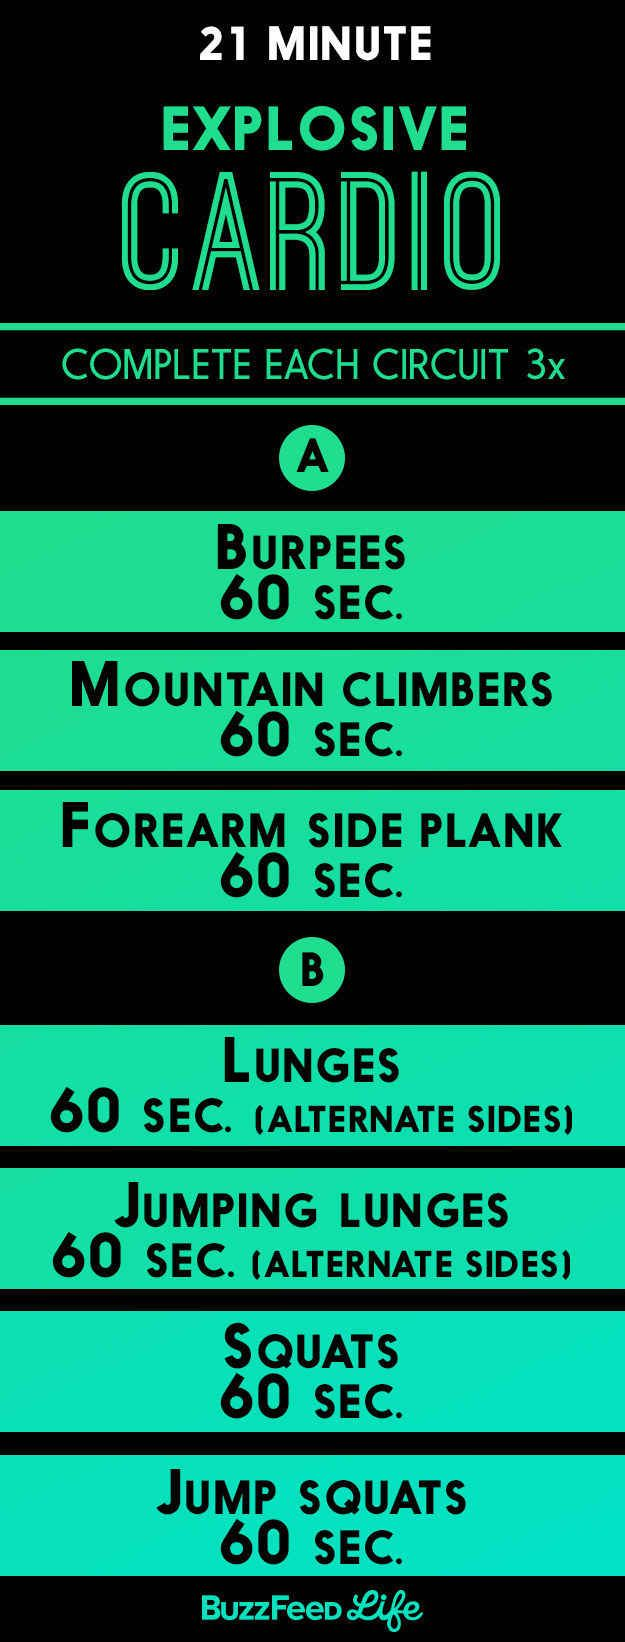 For a quick workout with plenty of jumping: